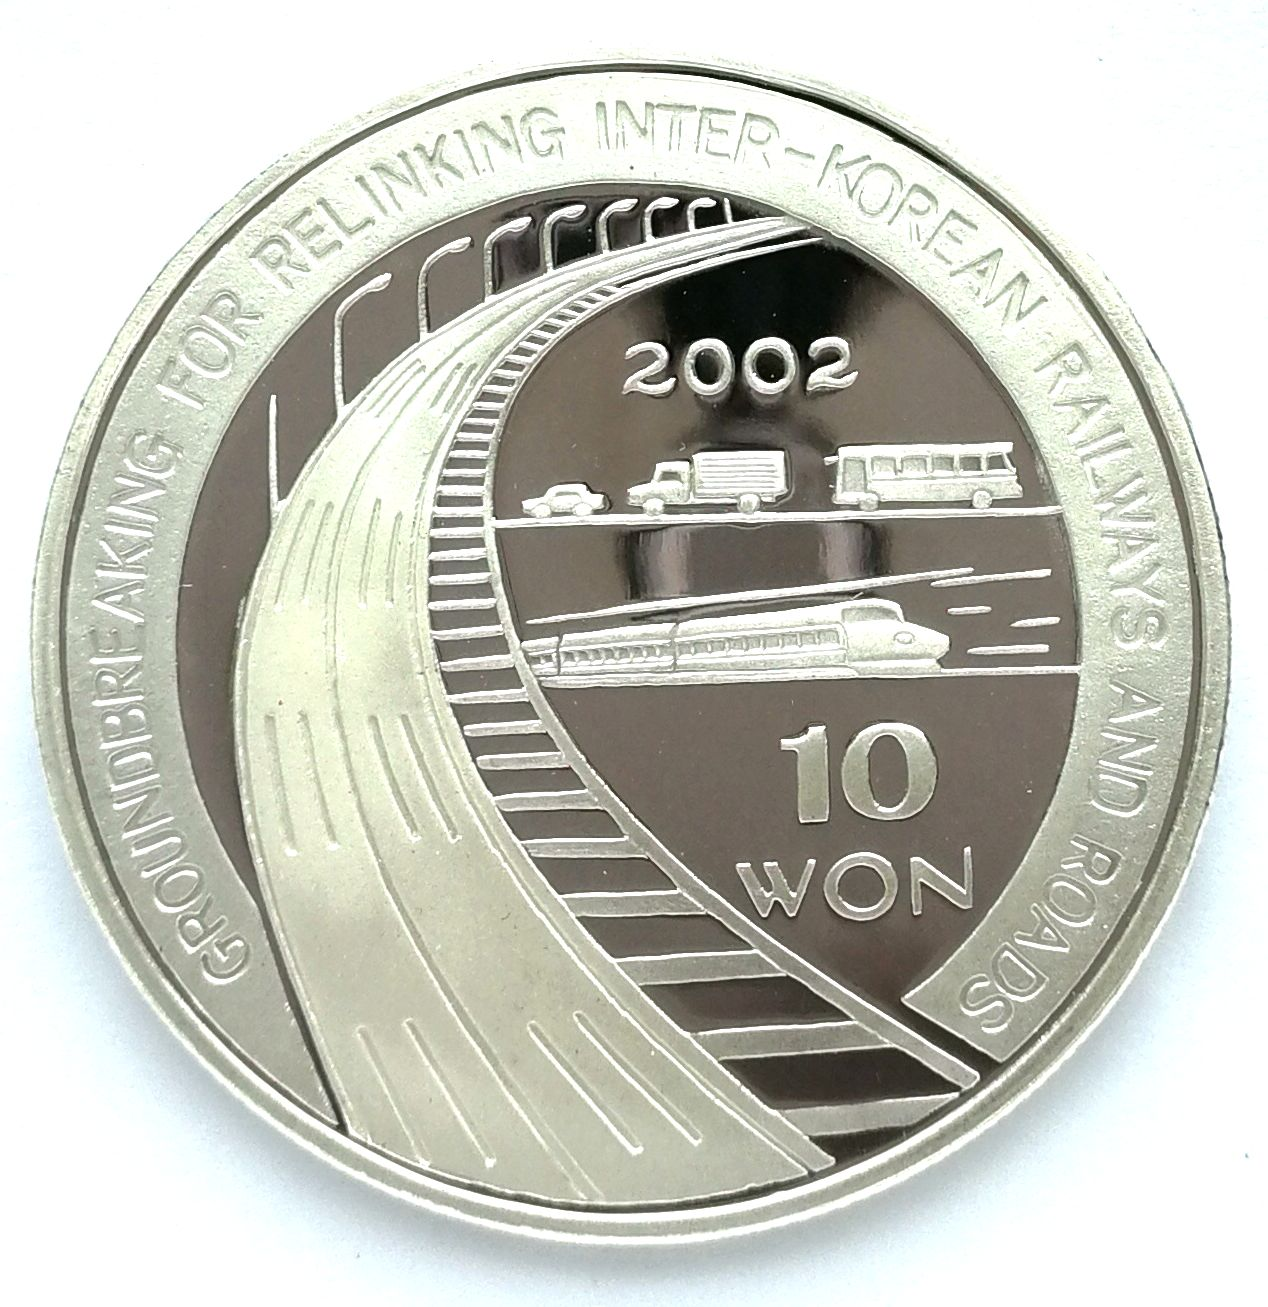 "L3574, Korea ""Relink Inter-Korean Railways"" Proof Silver Coin, 31 grams, 2002"